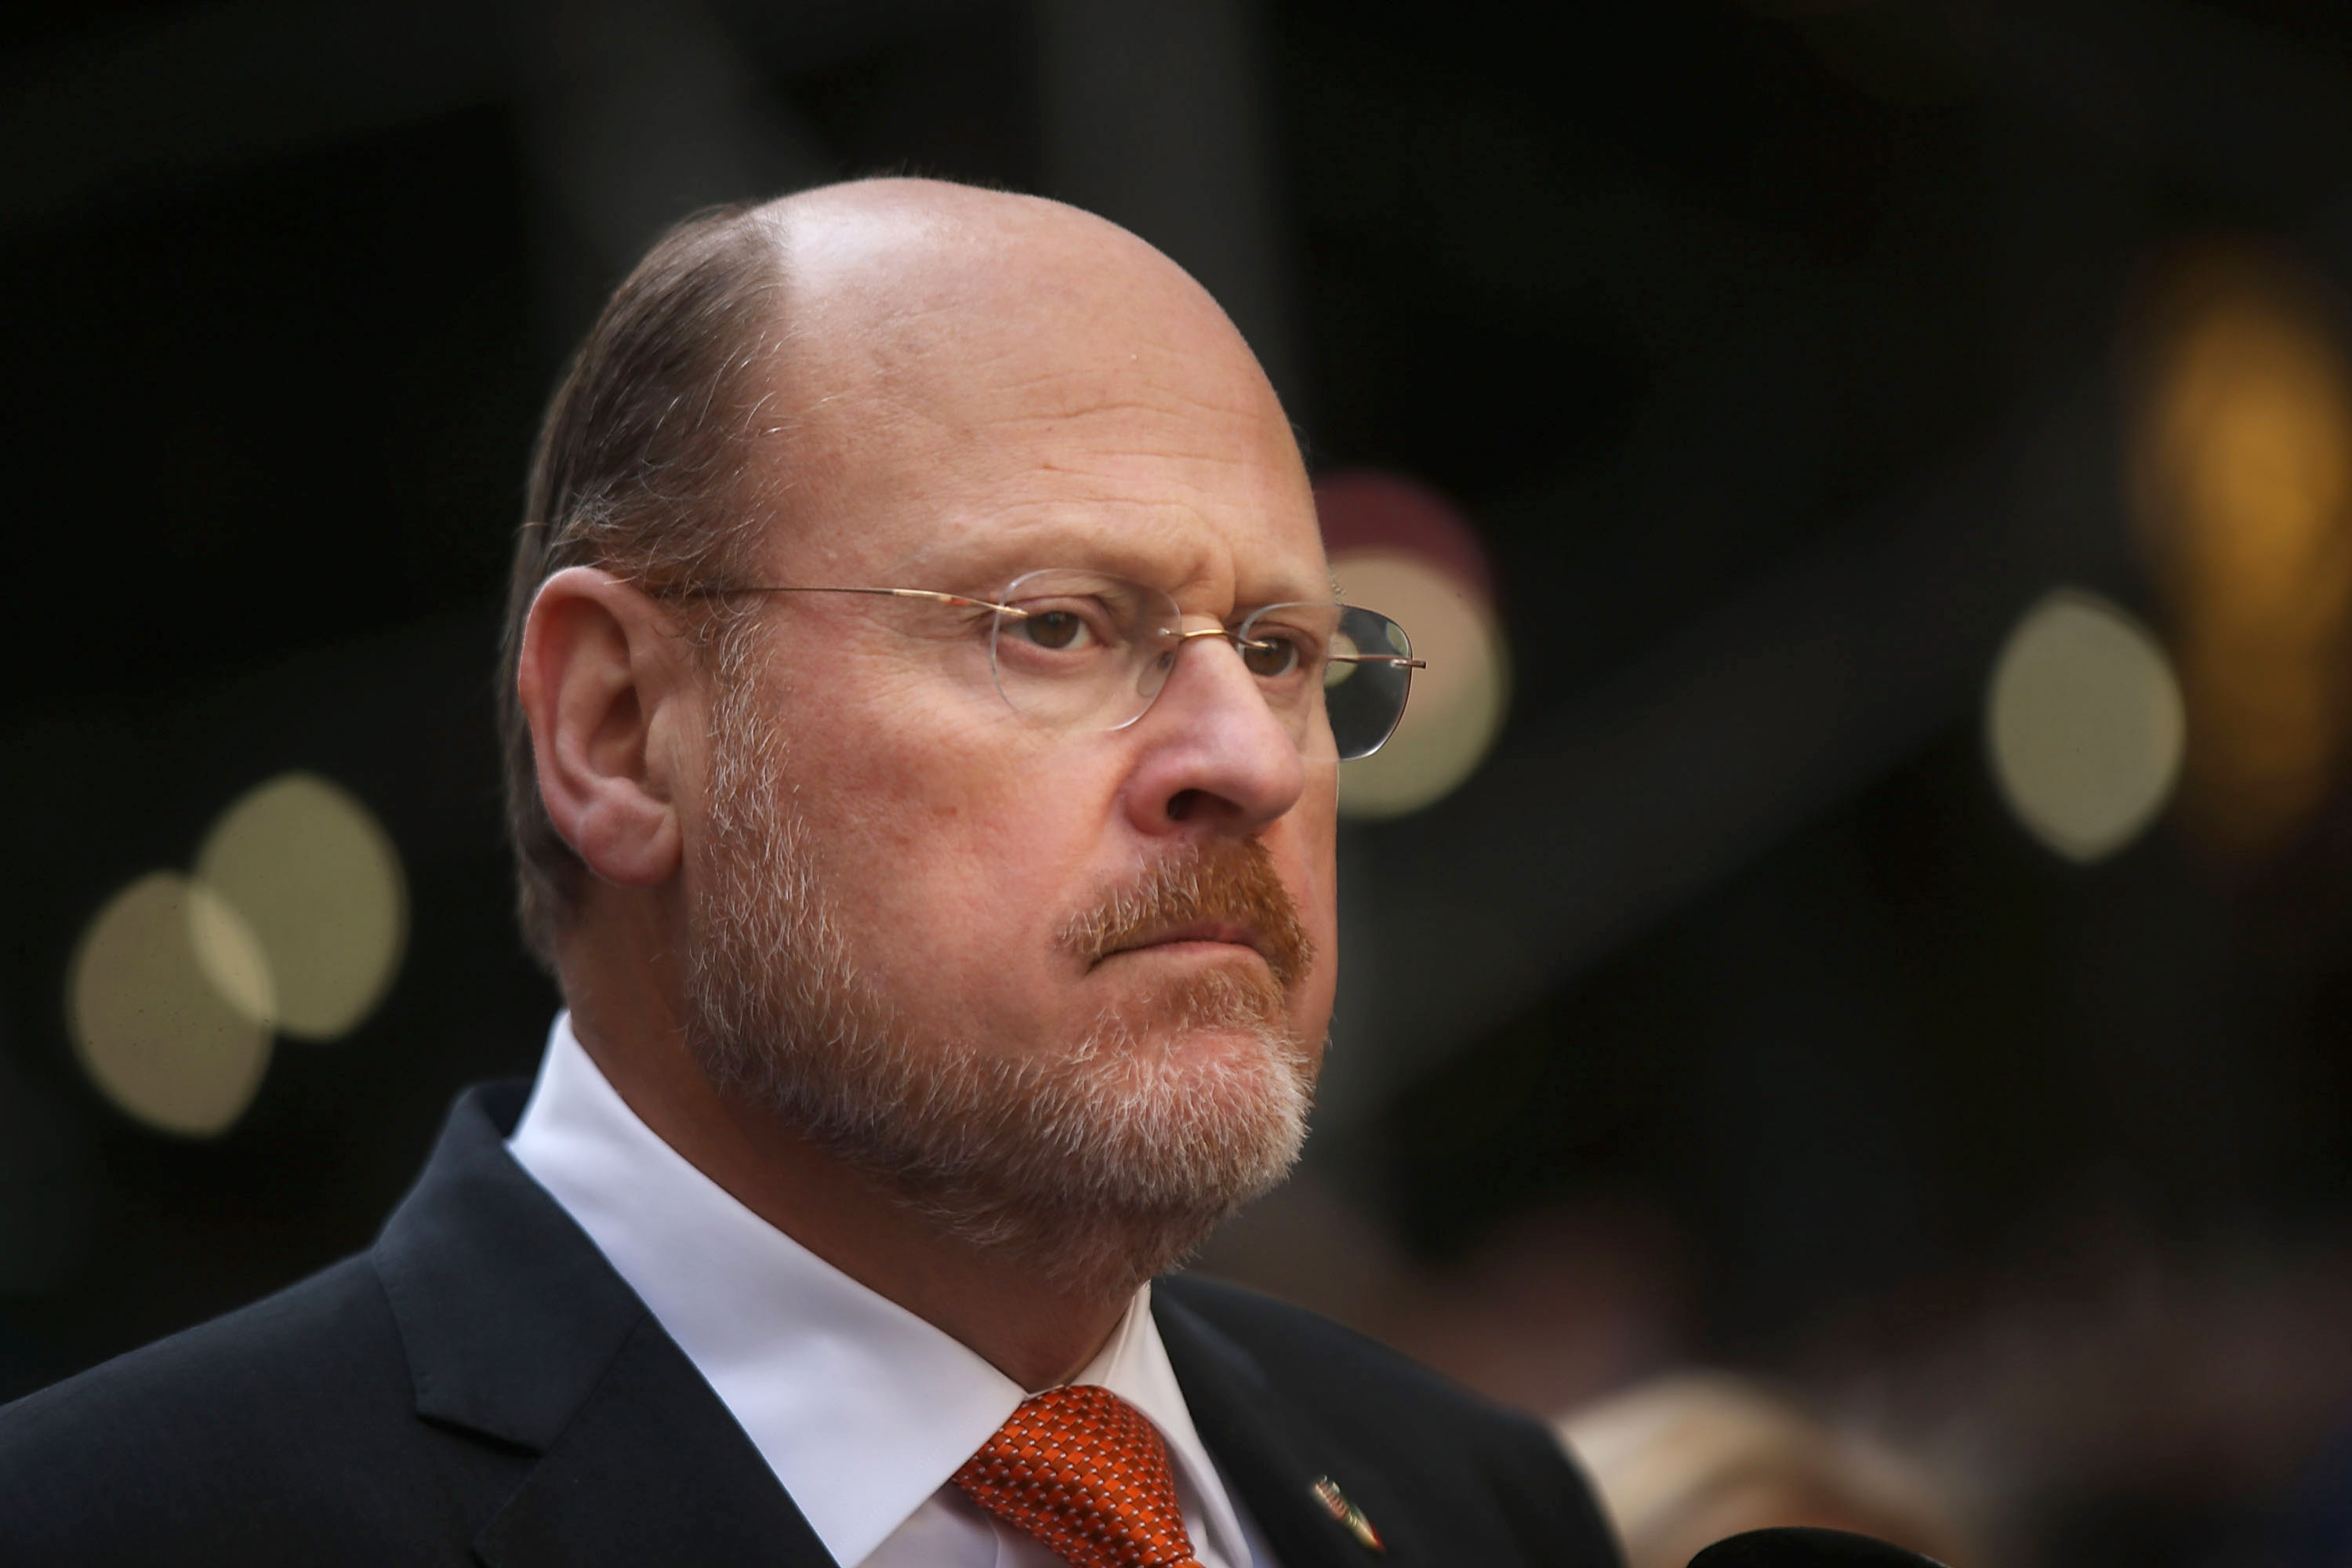 Joe Lhota, the Republican candidate for mayor in 2013. (Photo: Getty Images)